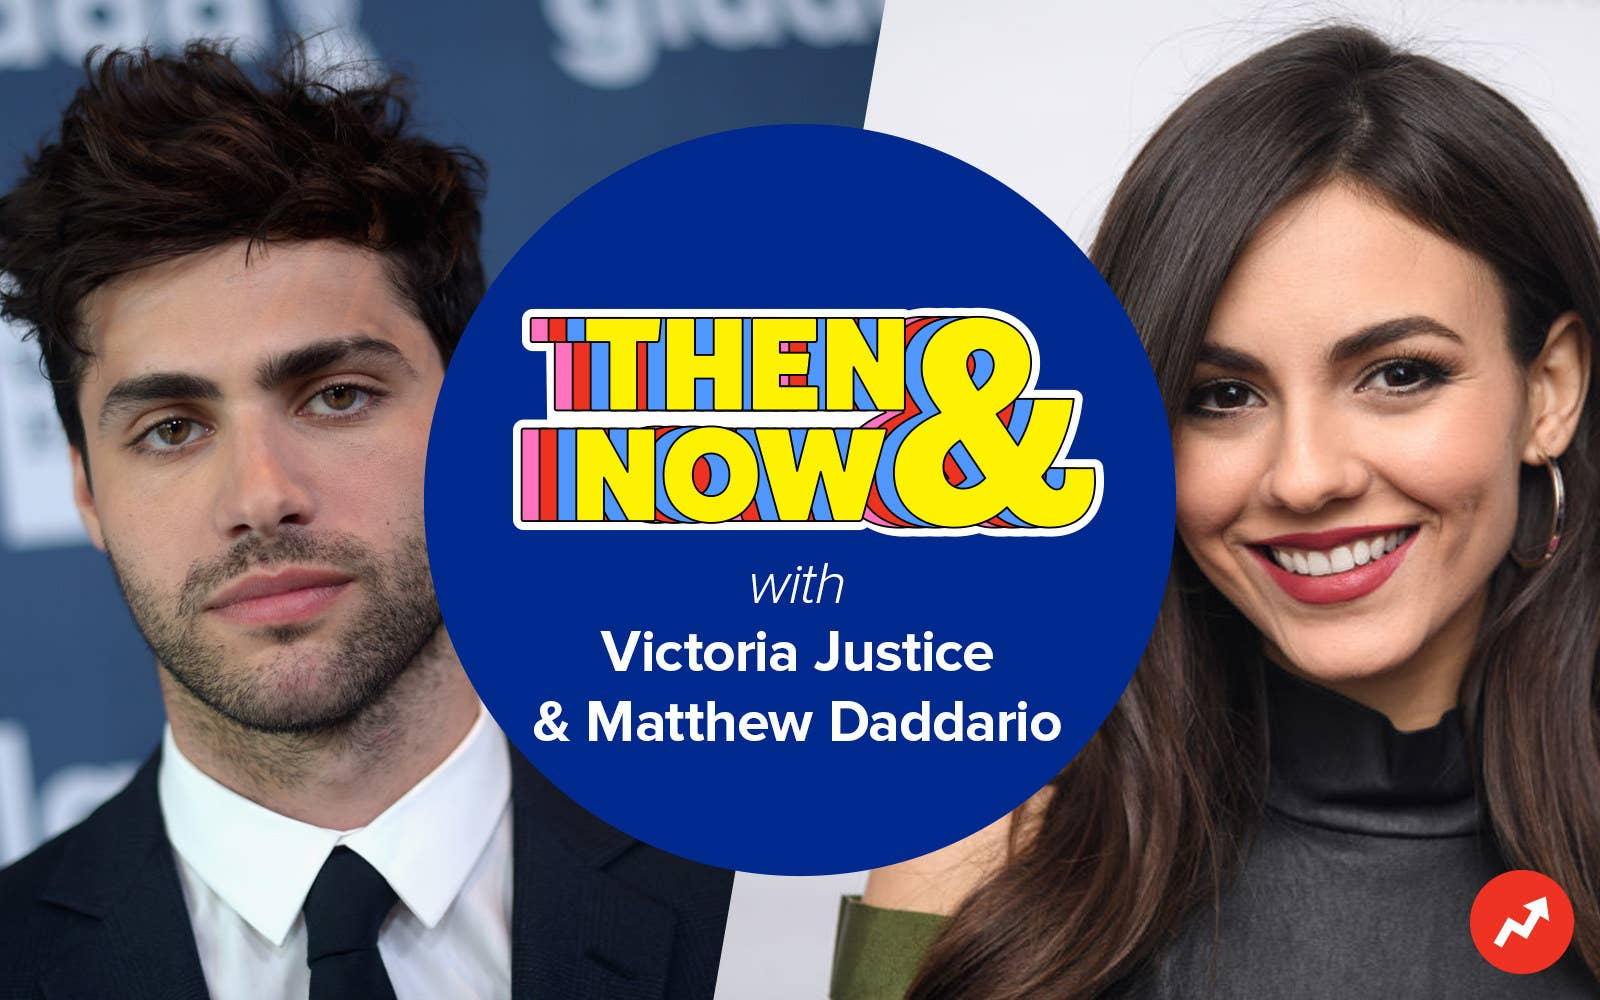 Then & Now logo with Matthew Daddario and Victoria Justice